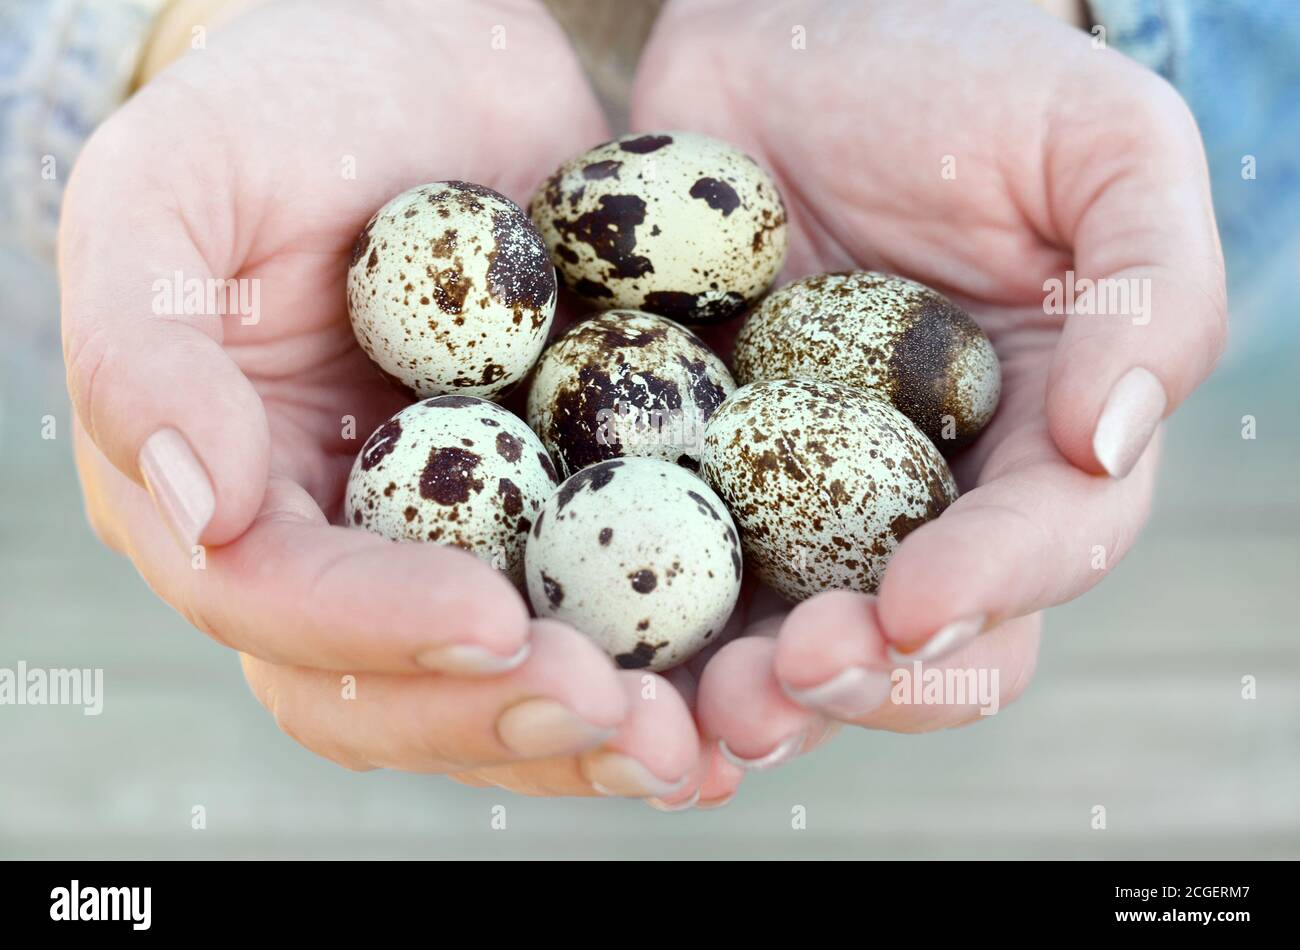 Seven speckled quail eggs in the hands of a woman close-up. Healthy eating. Easter concept. Shallow depth of field, selective focus. Stock Photo